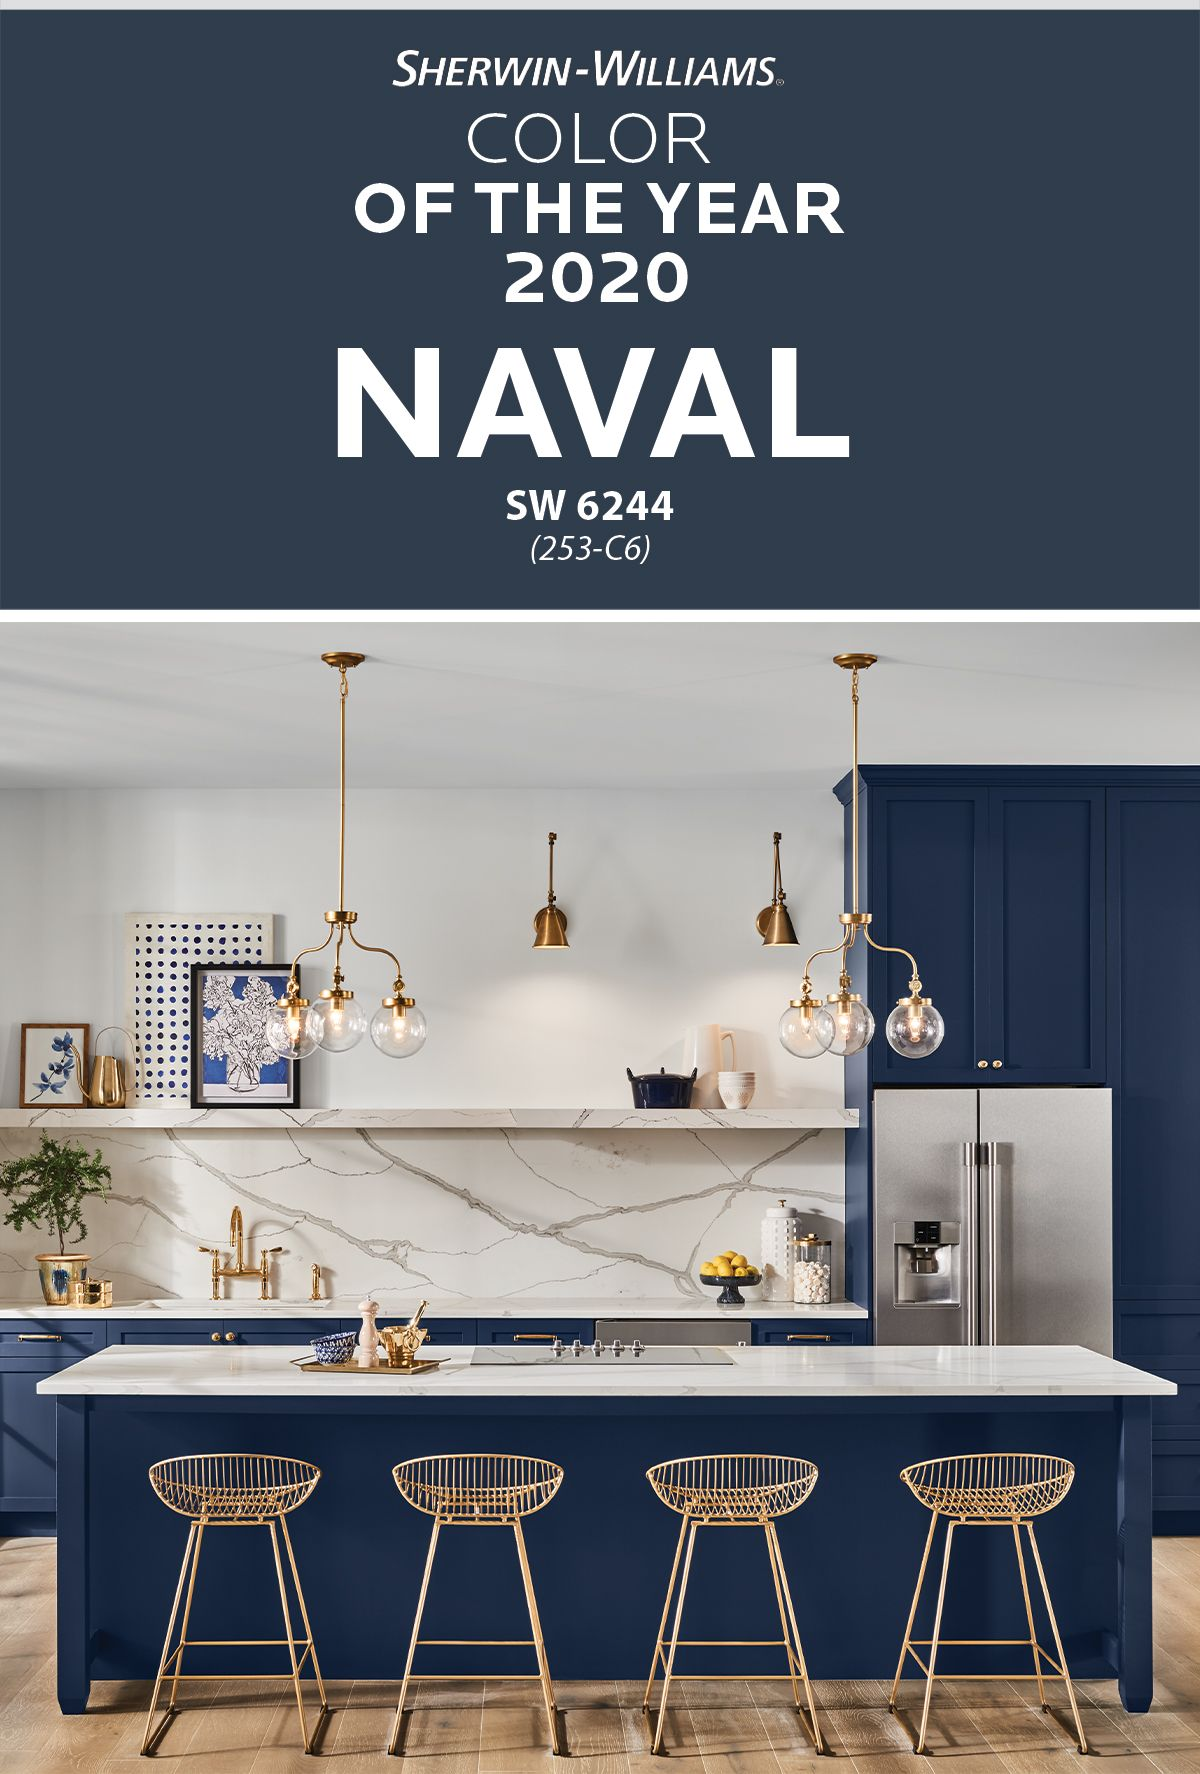 Embrace the next decade with the SherwinWilliams 2020